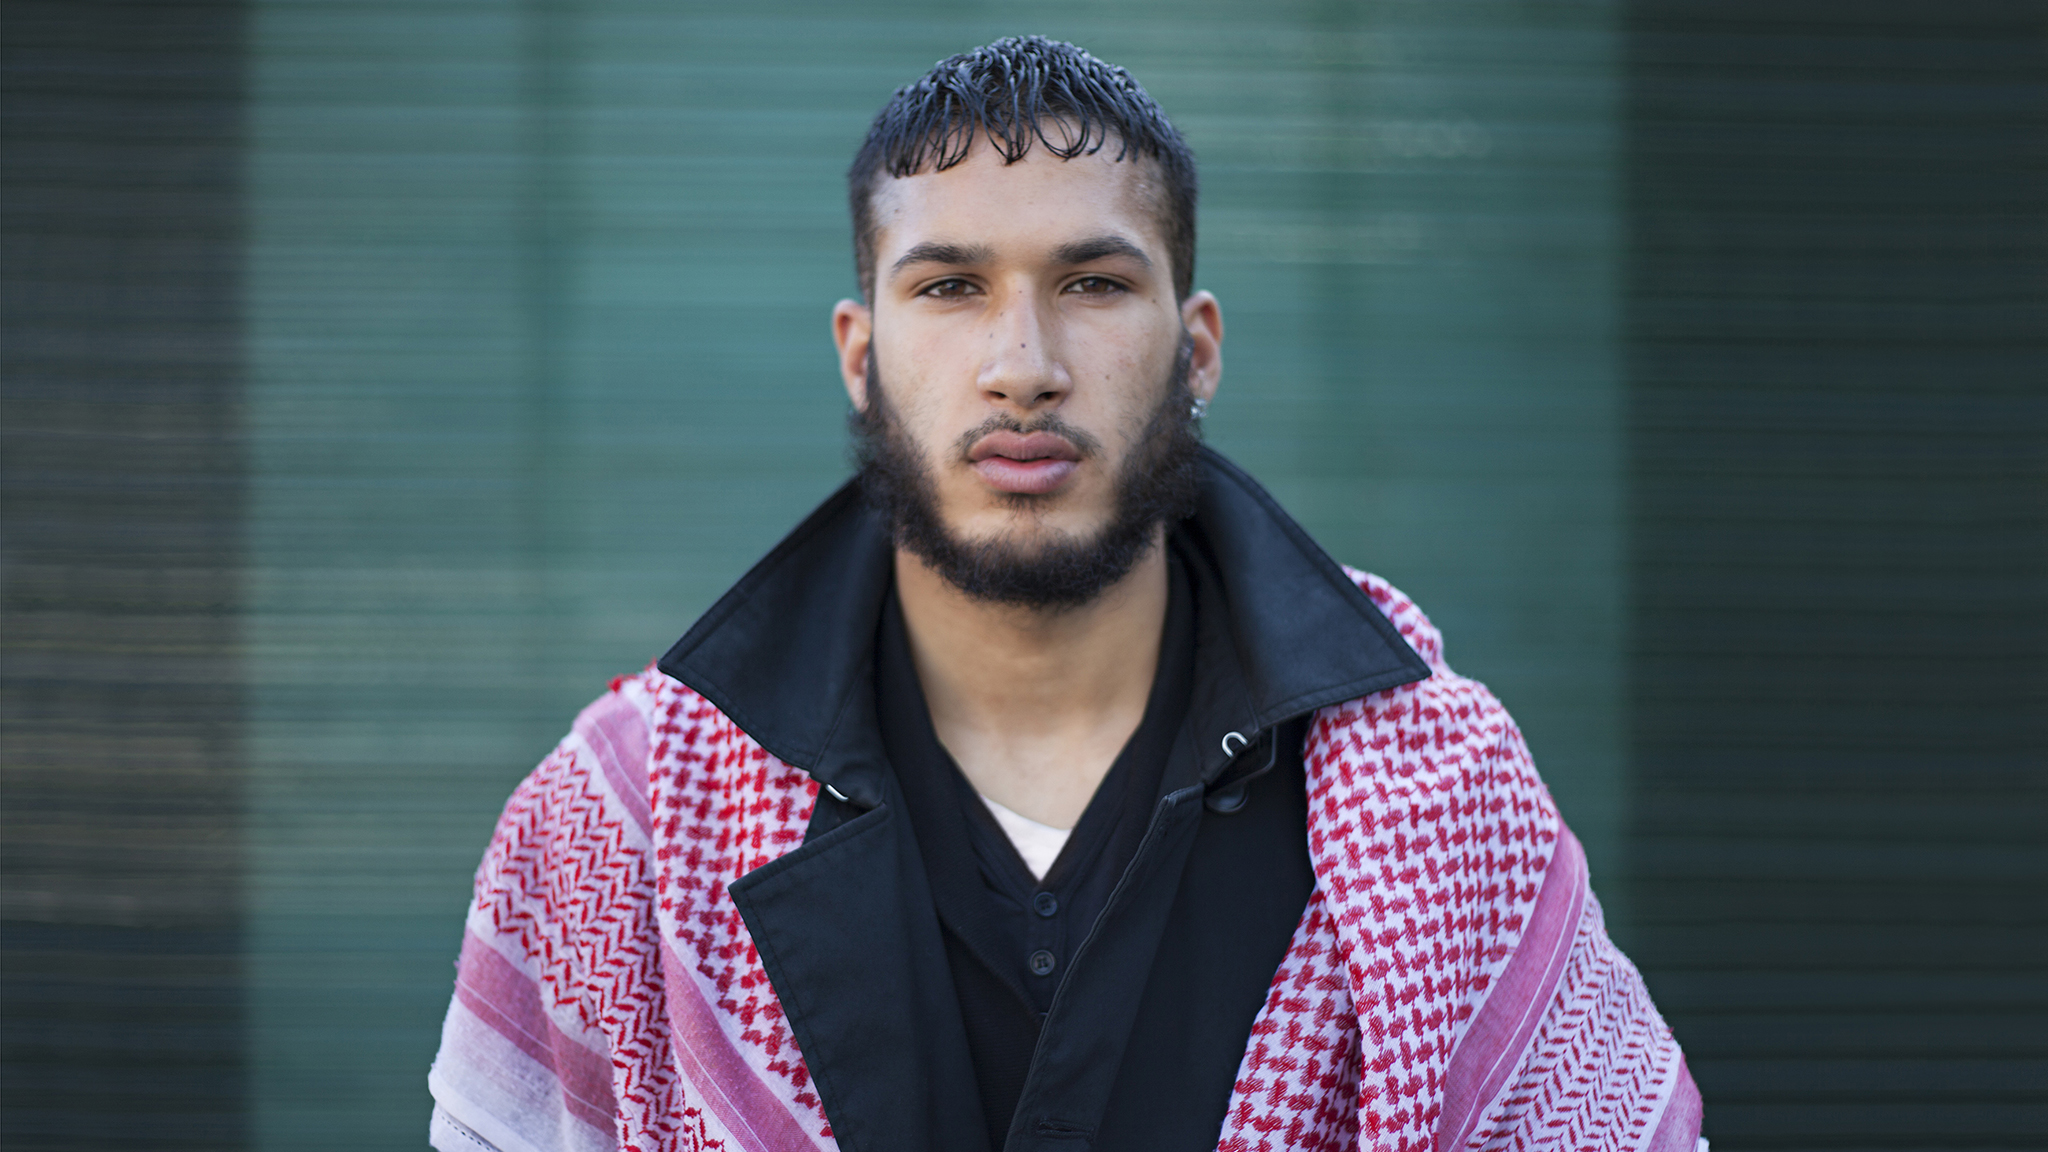 Mahtab Hussain on the multiple identities of young British Muslim men